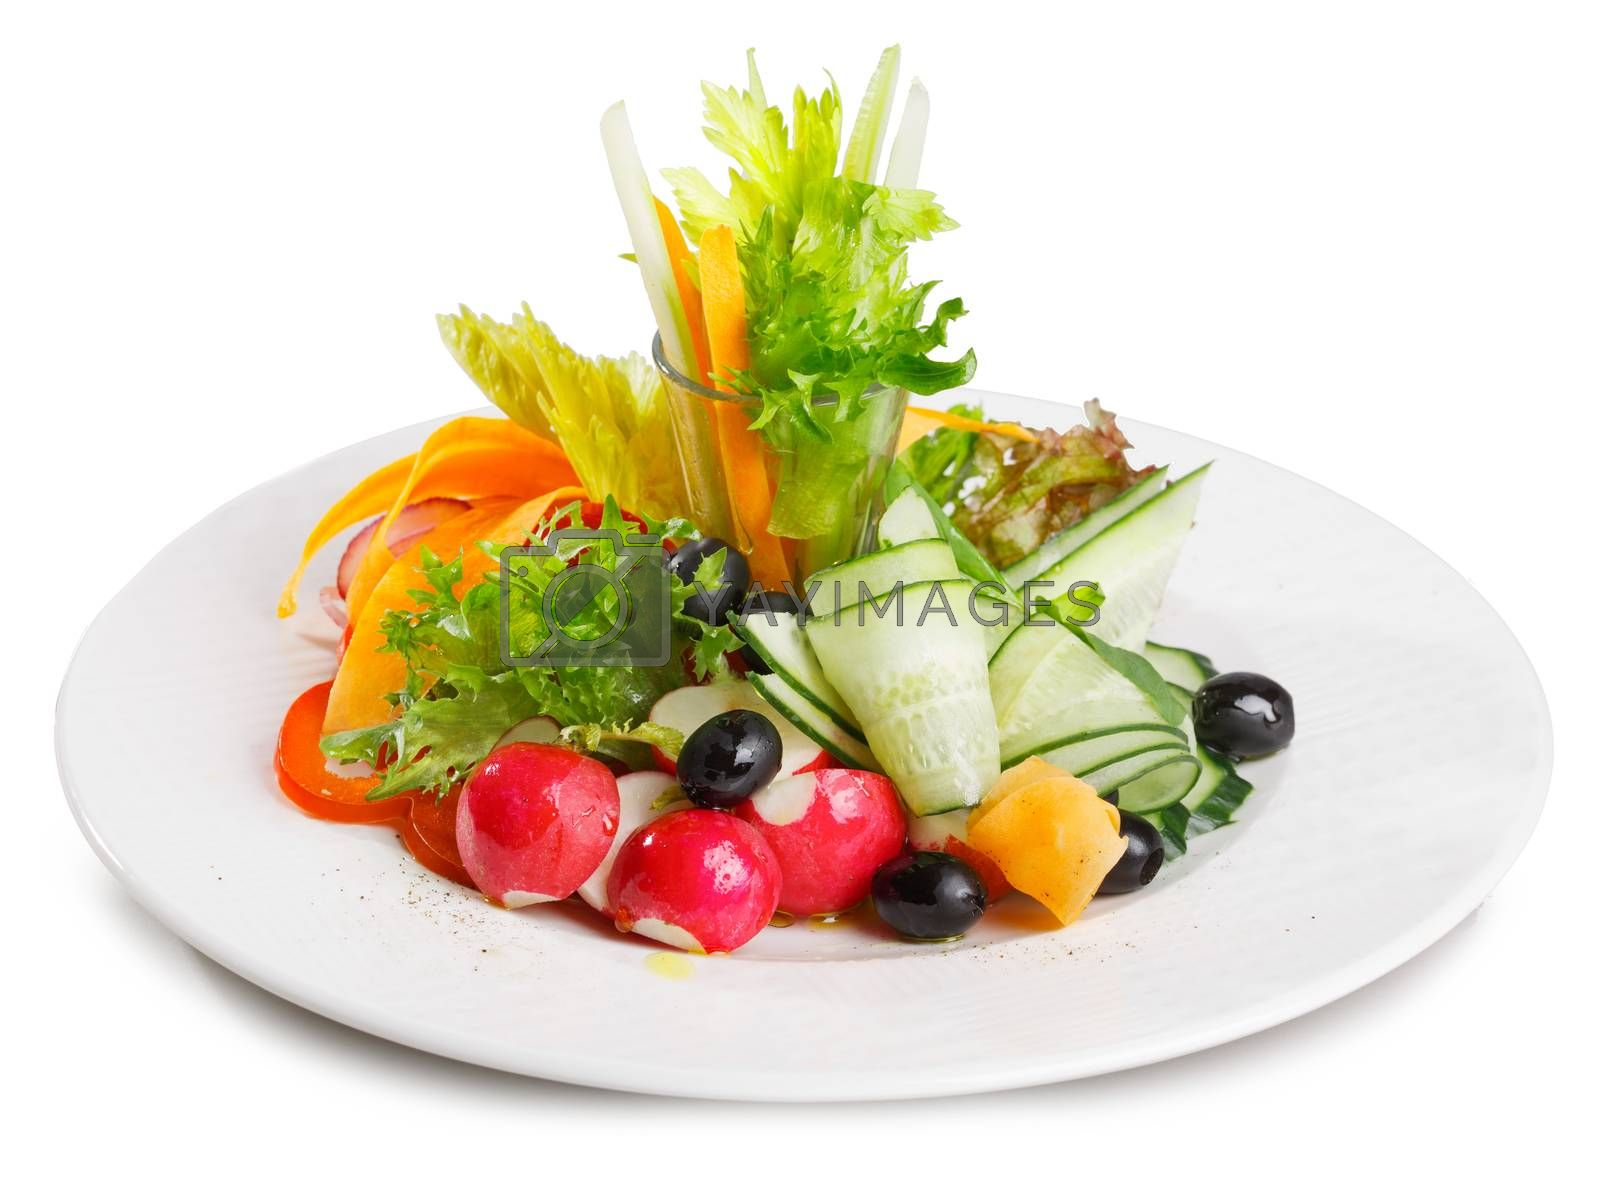 Royalty free image of Vegetable platter by maxsol